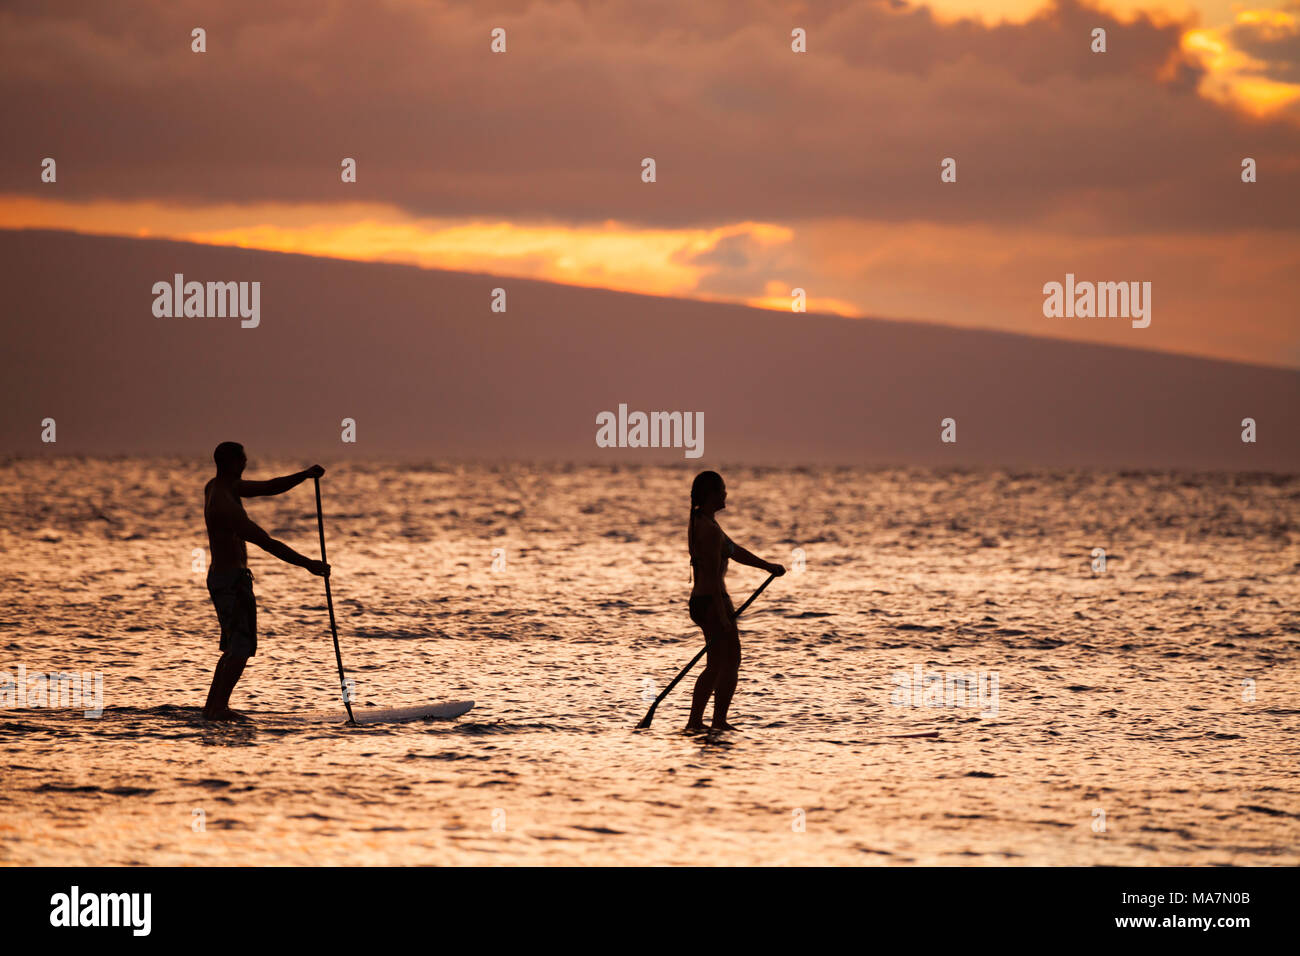 A fit male and female on stand up paddle boards enjoy a gorgeous sunset with the island of Lanai in the background off Maui, Hawaii, USA. - Stock Image